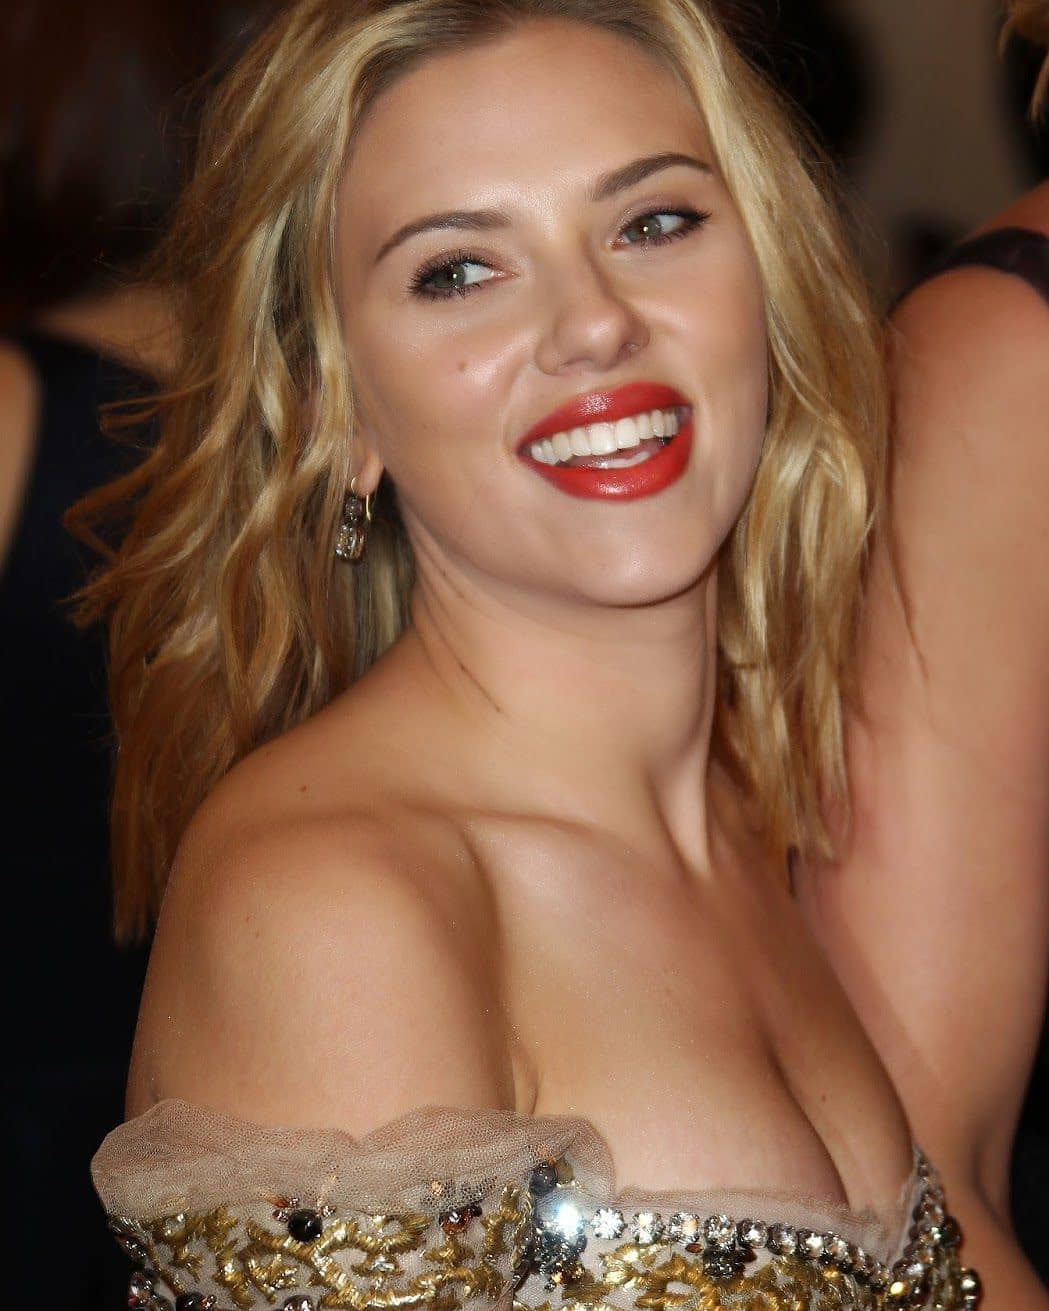 Scarlett Johansson sexy cleavage photos